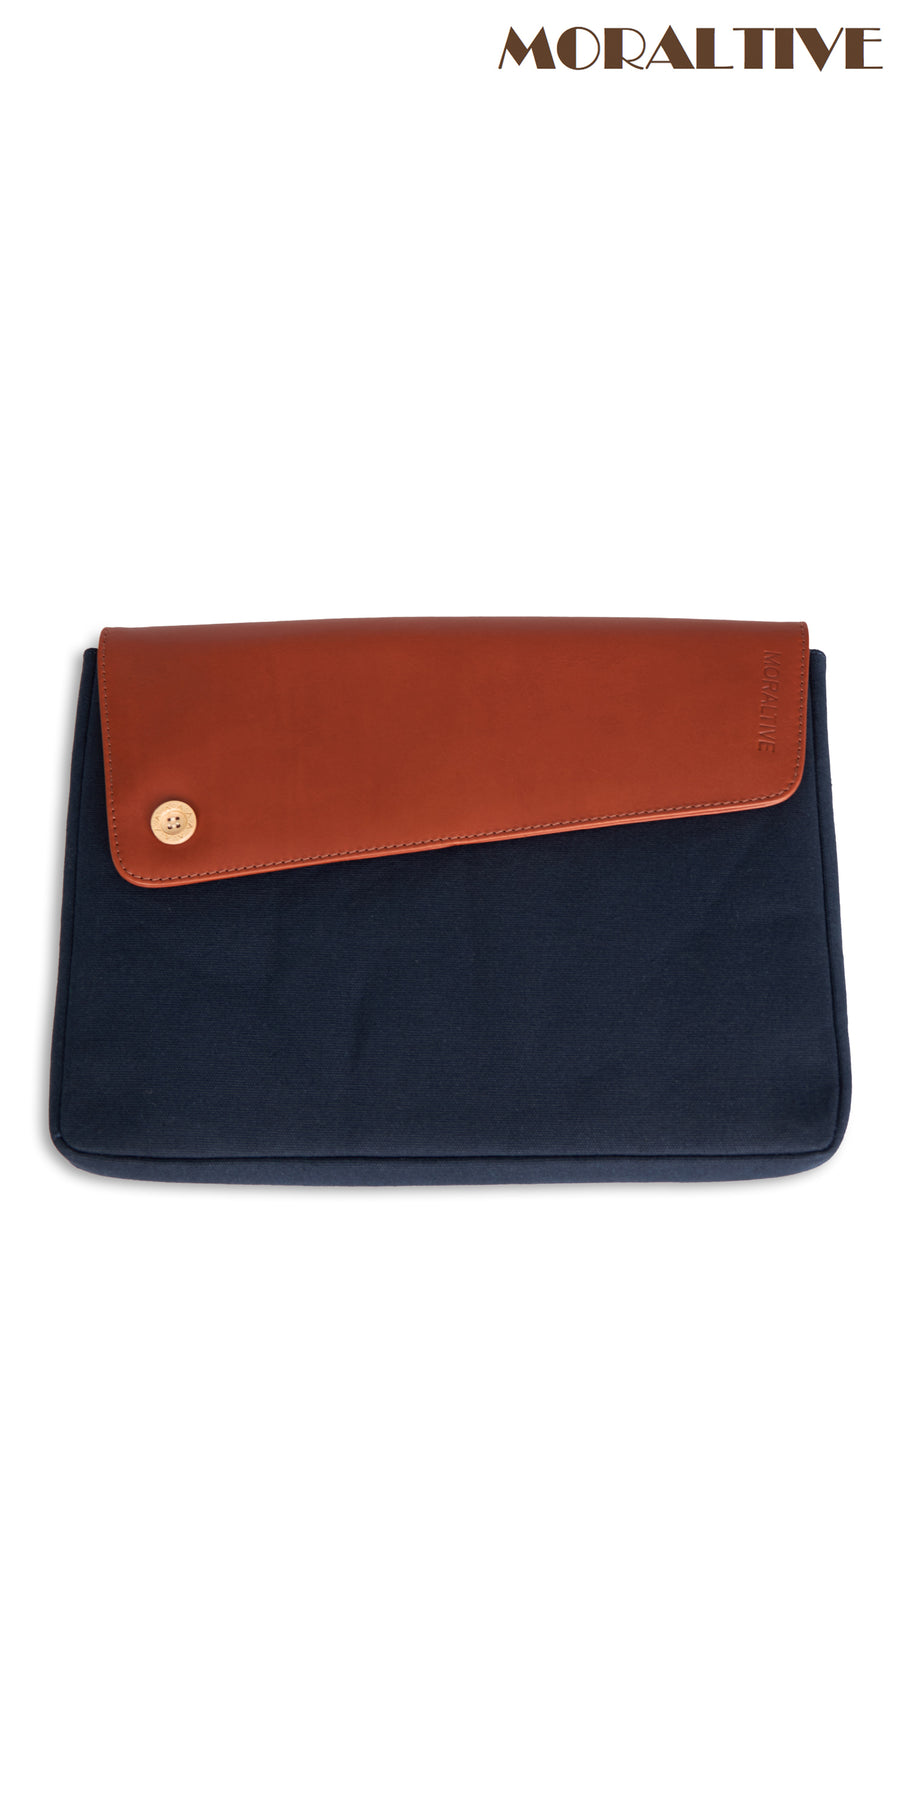 Moraltive Laptop Sleeves - Navy Blue & Tan